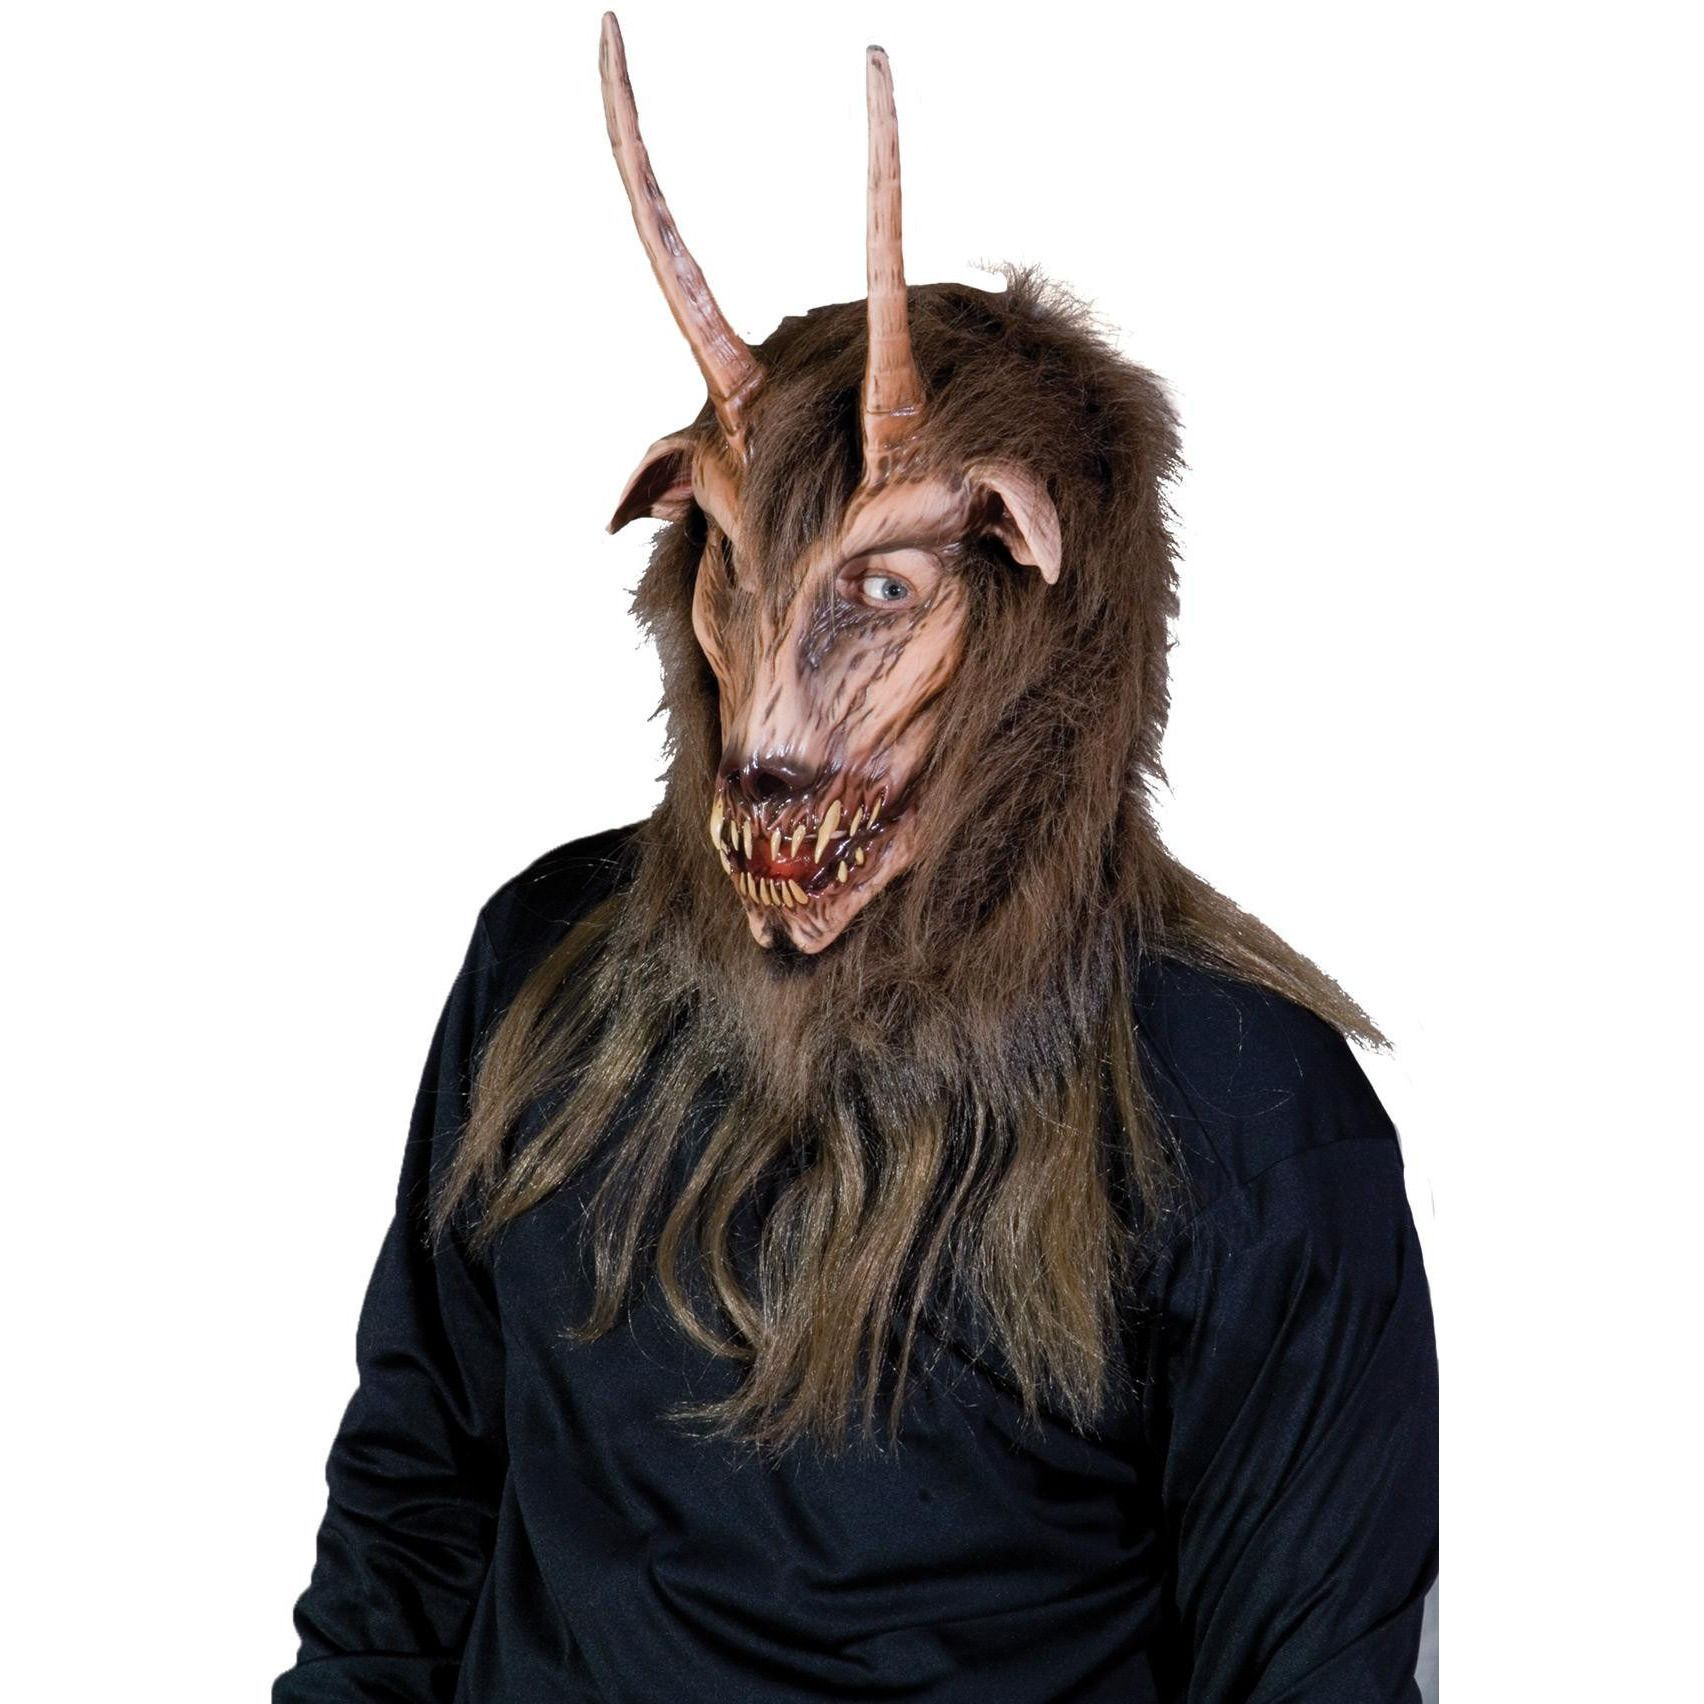 Baphomet Goat Mask by Nymla on DeviantArt | Masks | Pinterest ...